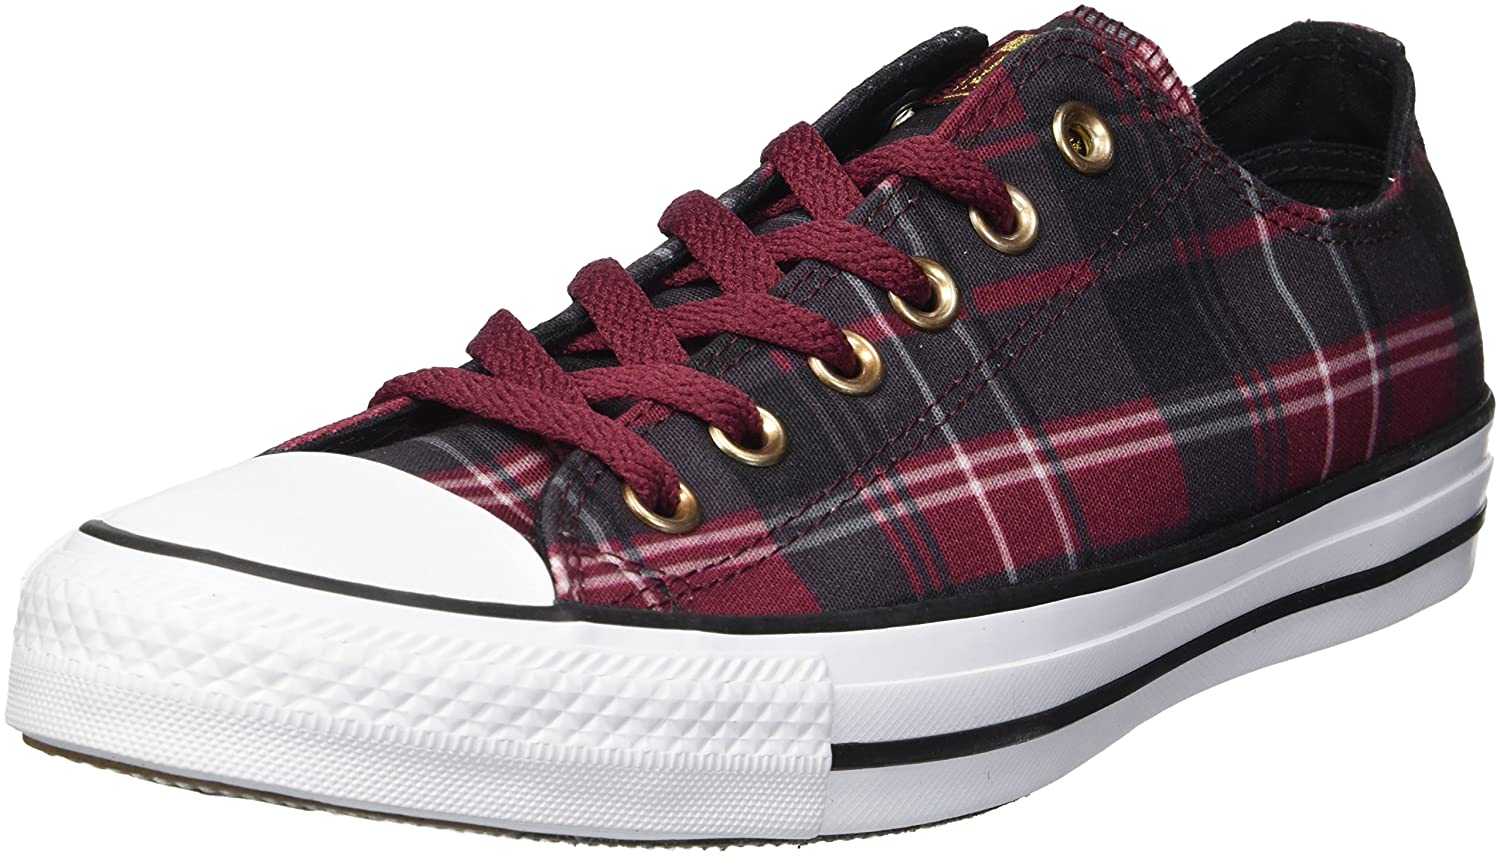 Converse Women's Chuck Taylor All Star Plaid Low Top Sneaker B078NGNJRK 5 M US|Dark Burgundy/Black/White